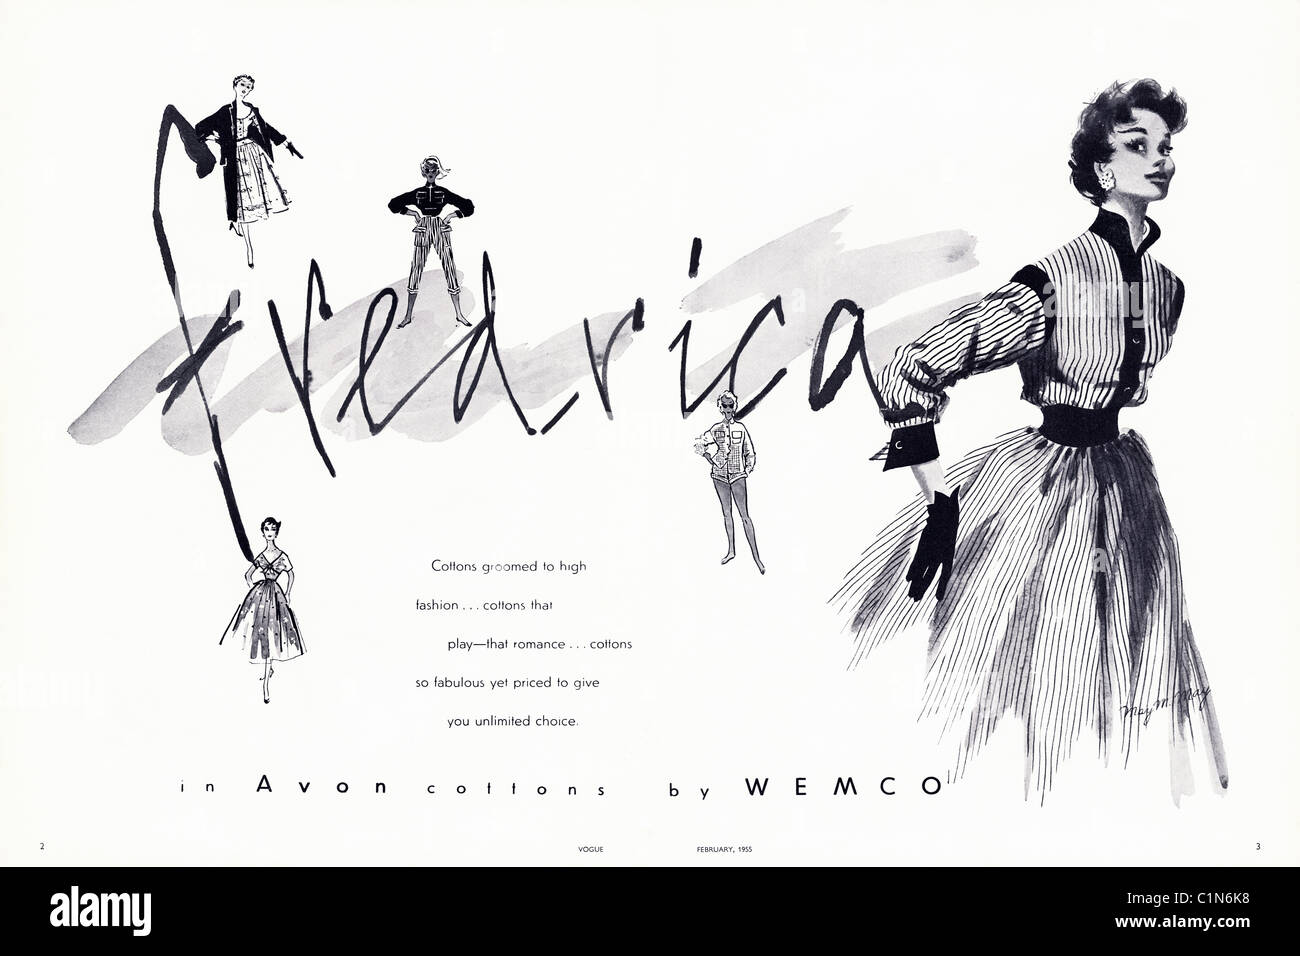 Original double page 1950s advert in women's fashion magazine for FREDRICA fashions by WEMCO - Stock Image